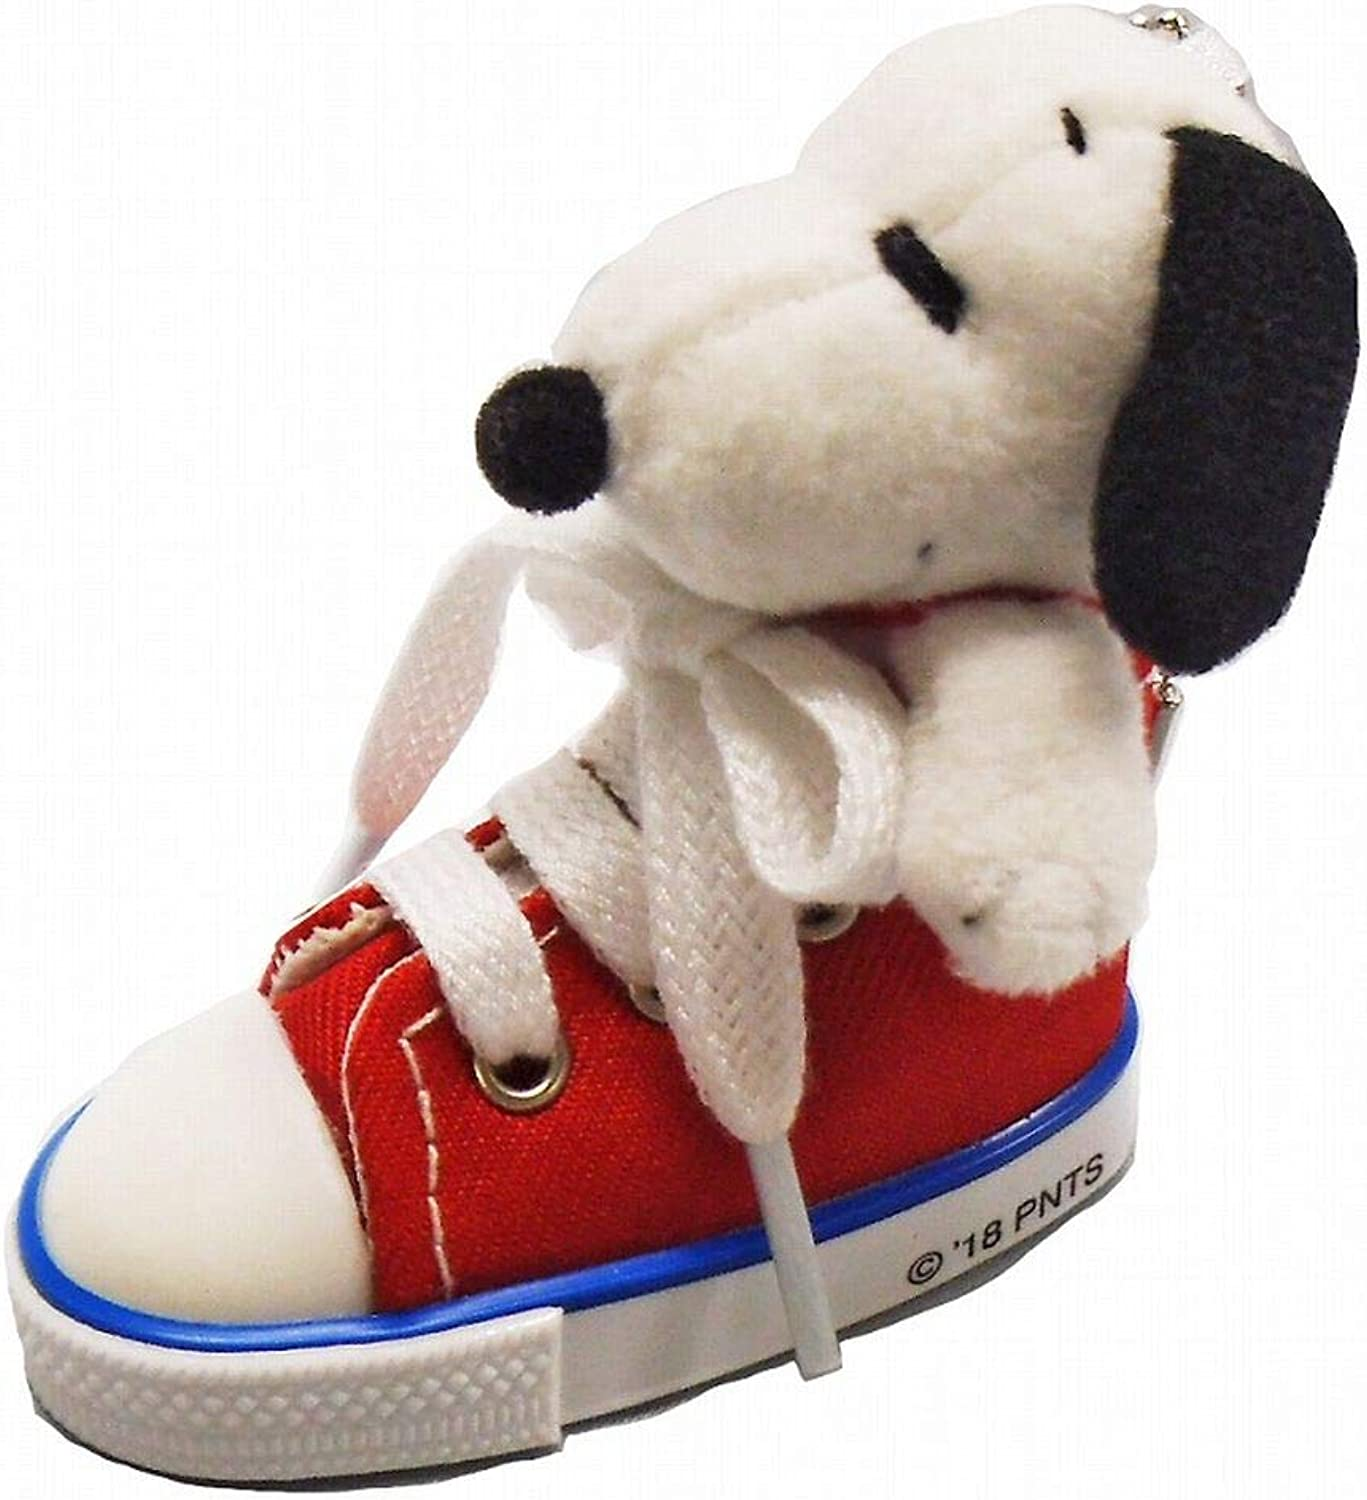 Snoopy in Sneakers Key Charm Mascot Red